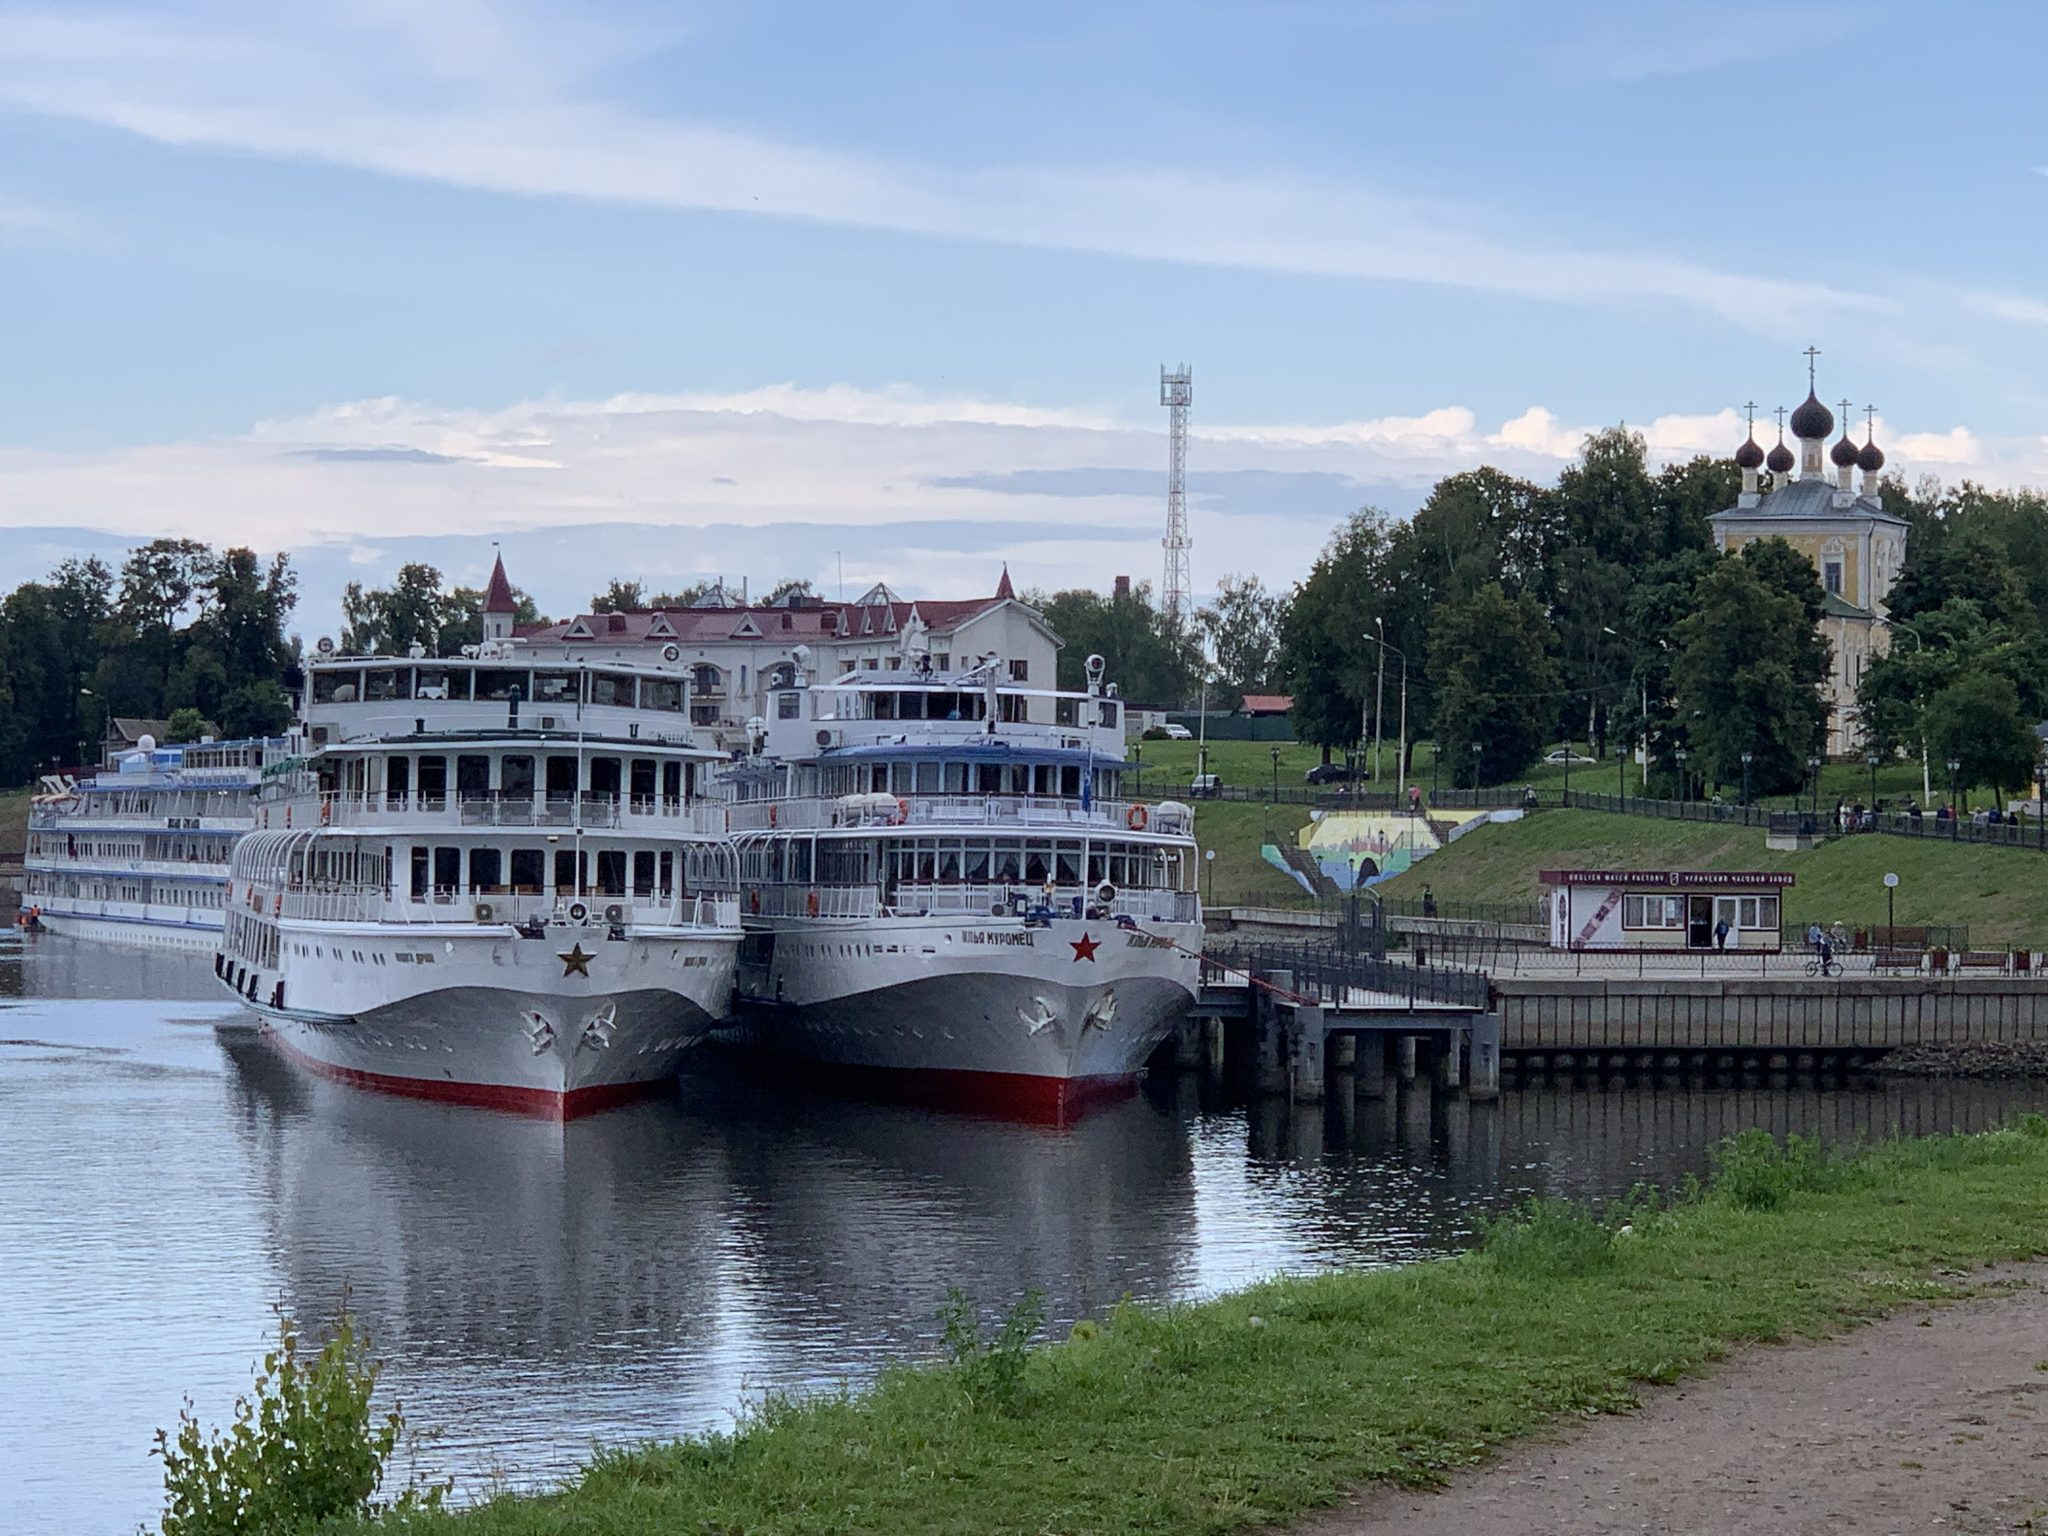 Volga Dream docked